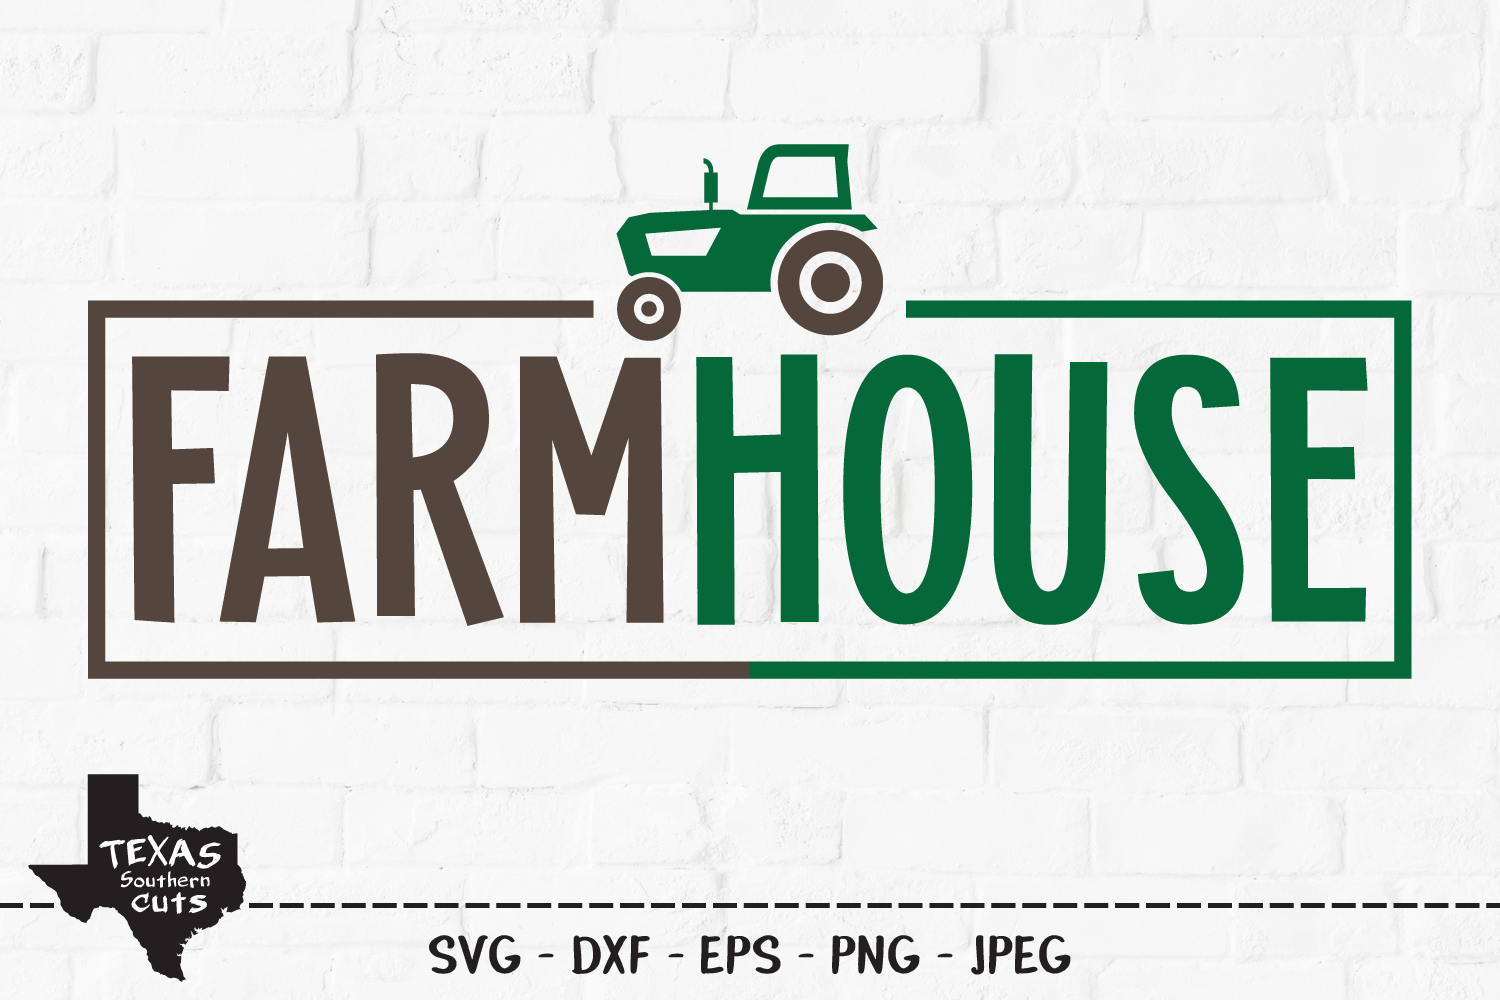 Download Free Farmhouse Country Design Graphic By Texassoutherncuts for Cricut Explore, Silhouette and other cutting machines.